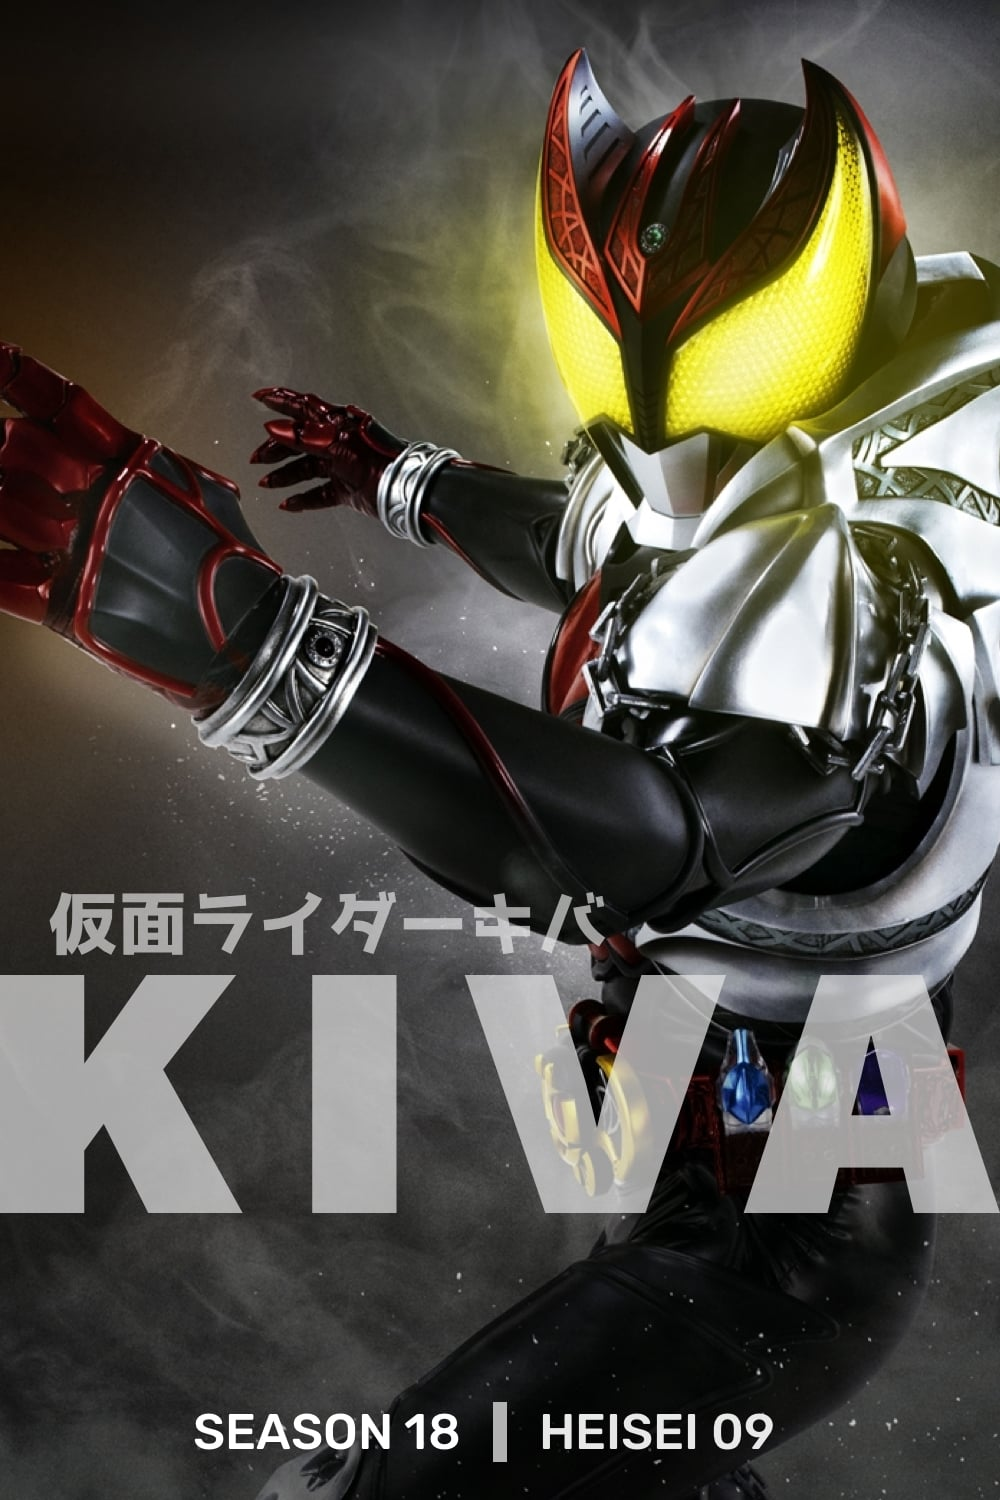 Kamen Rider - Season 21 Episode 2 : Greed, Ice Candy, Present Season 18